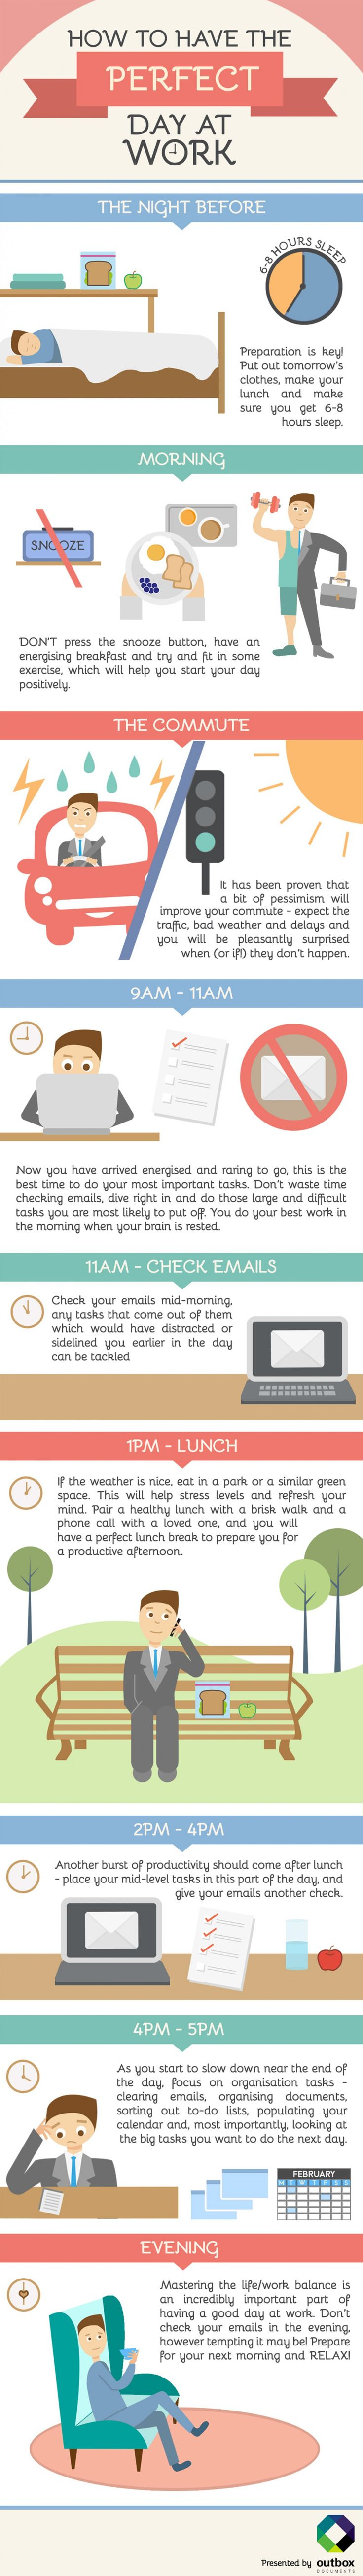 How to Have the Perfect Day at Work Infographic